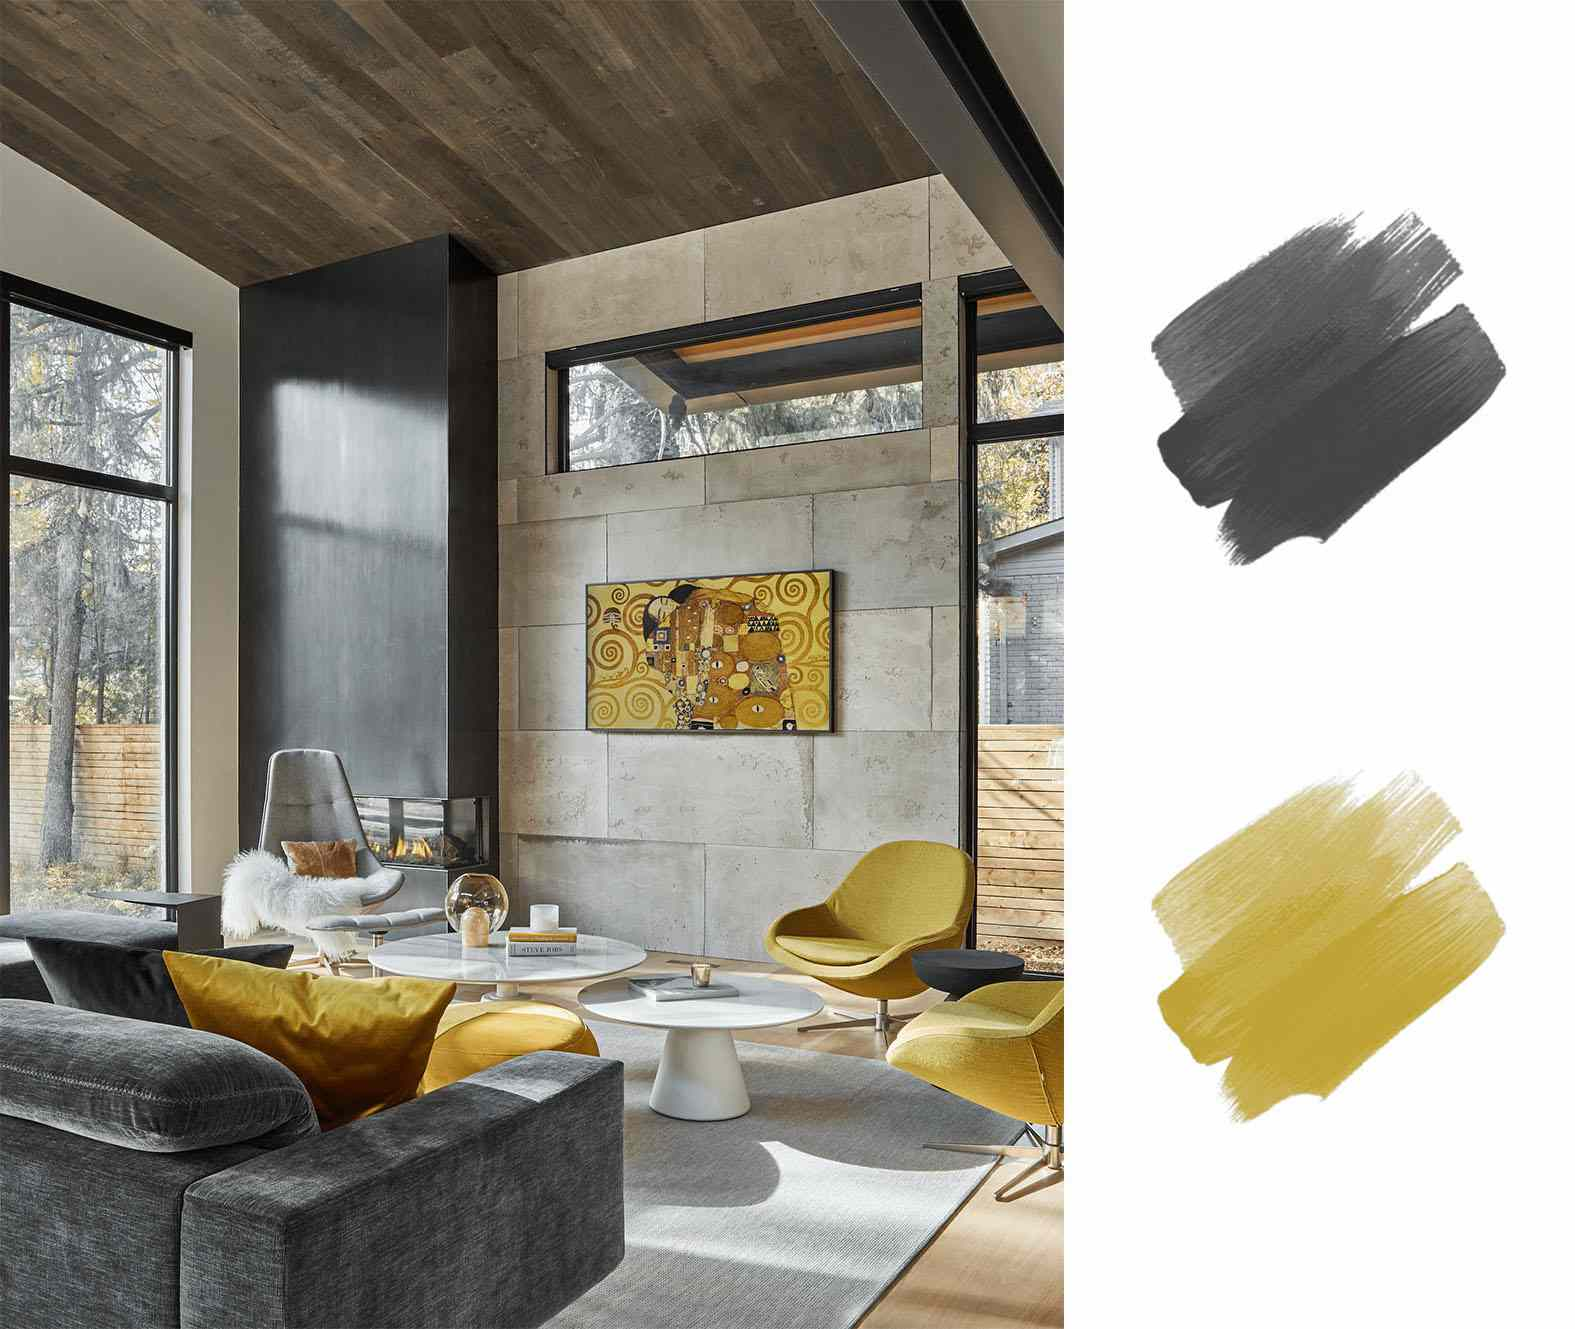 best interior color scheme - yellow and black